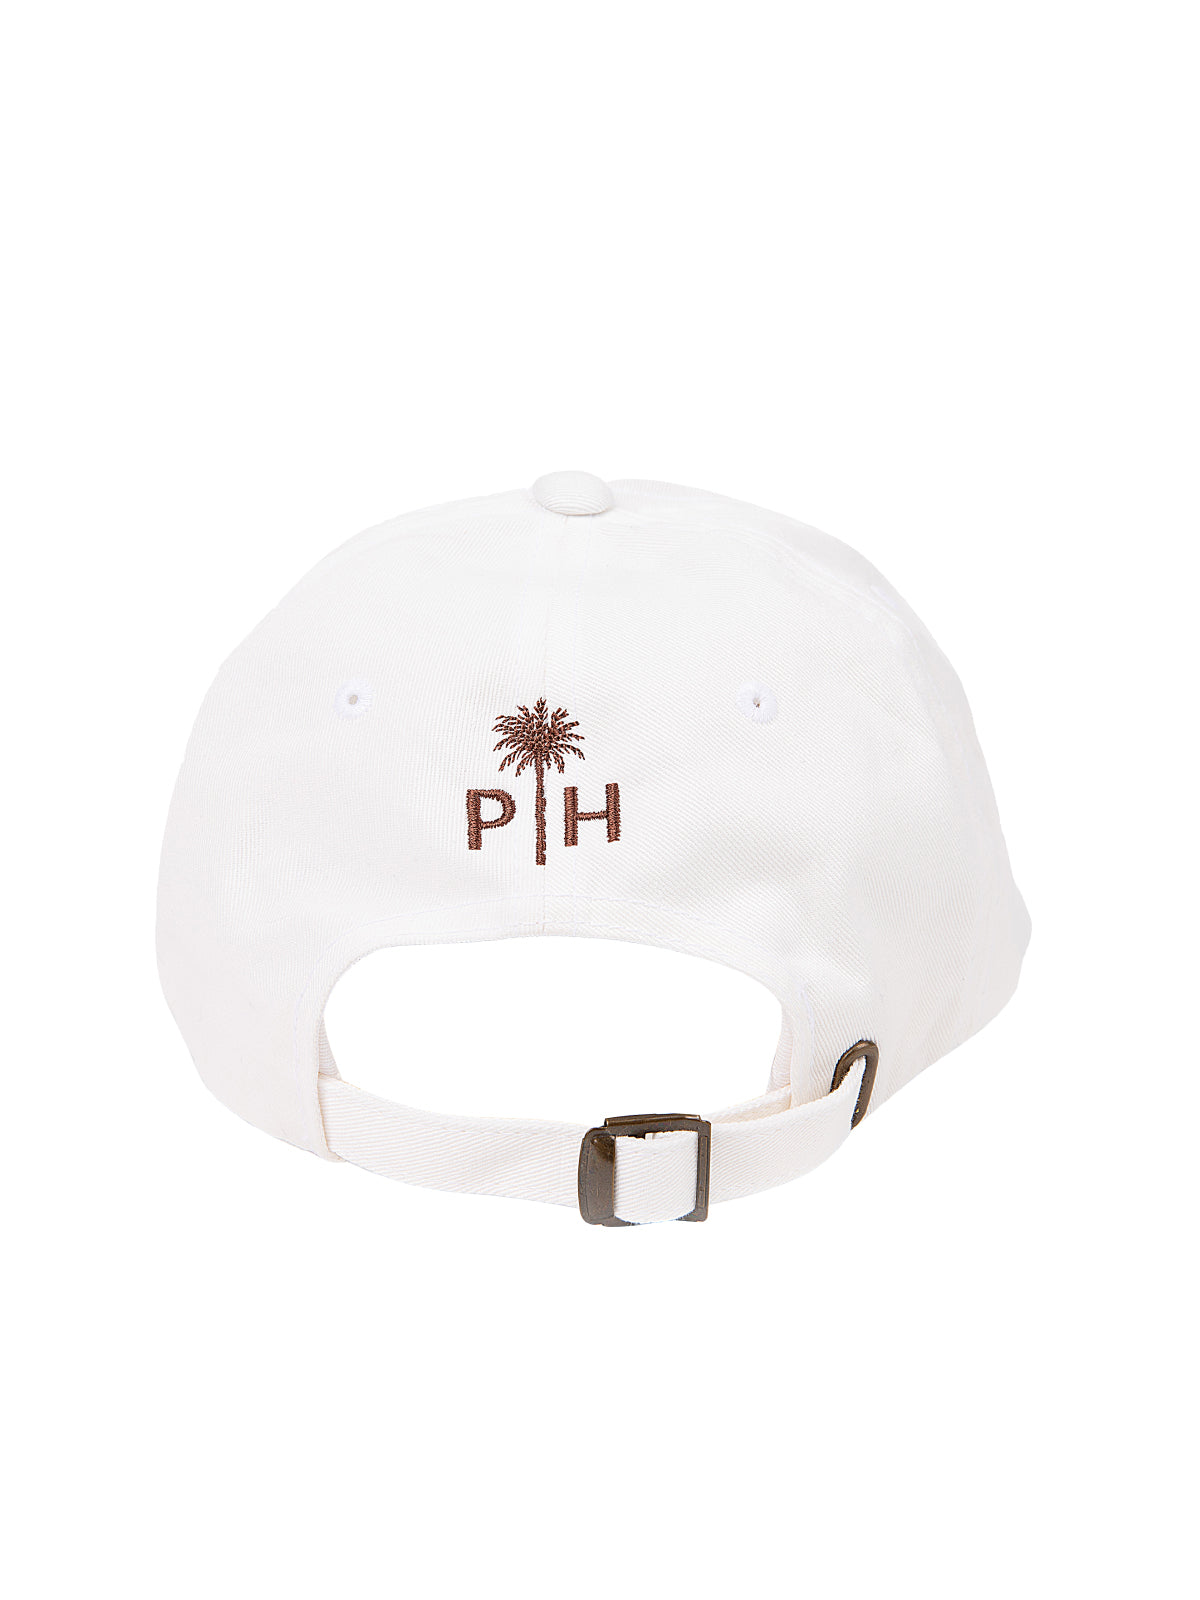 Palm Heights baseball hat white